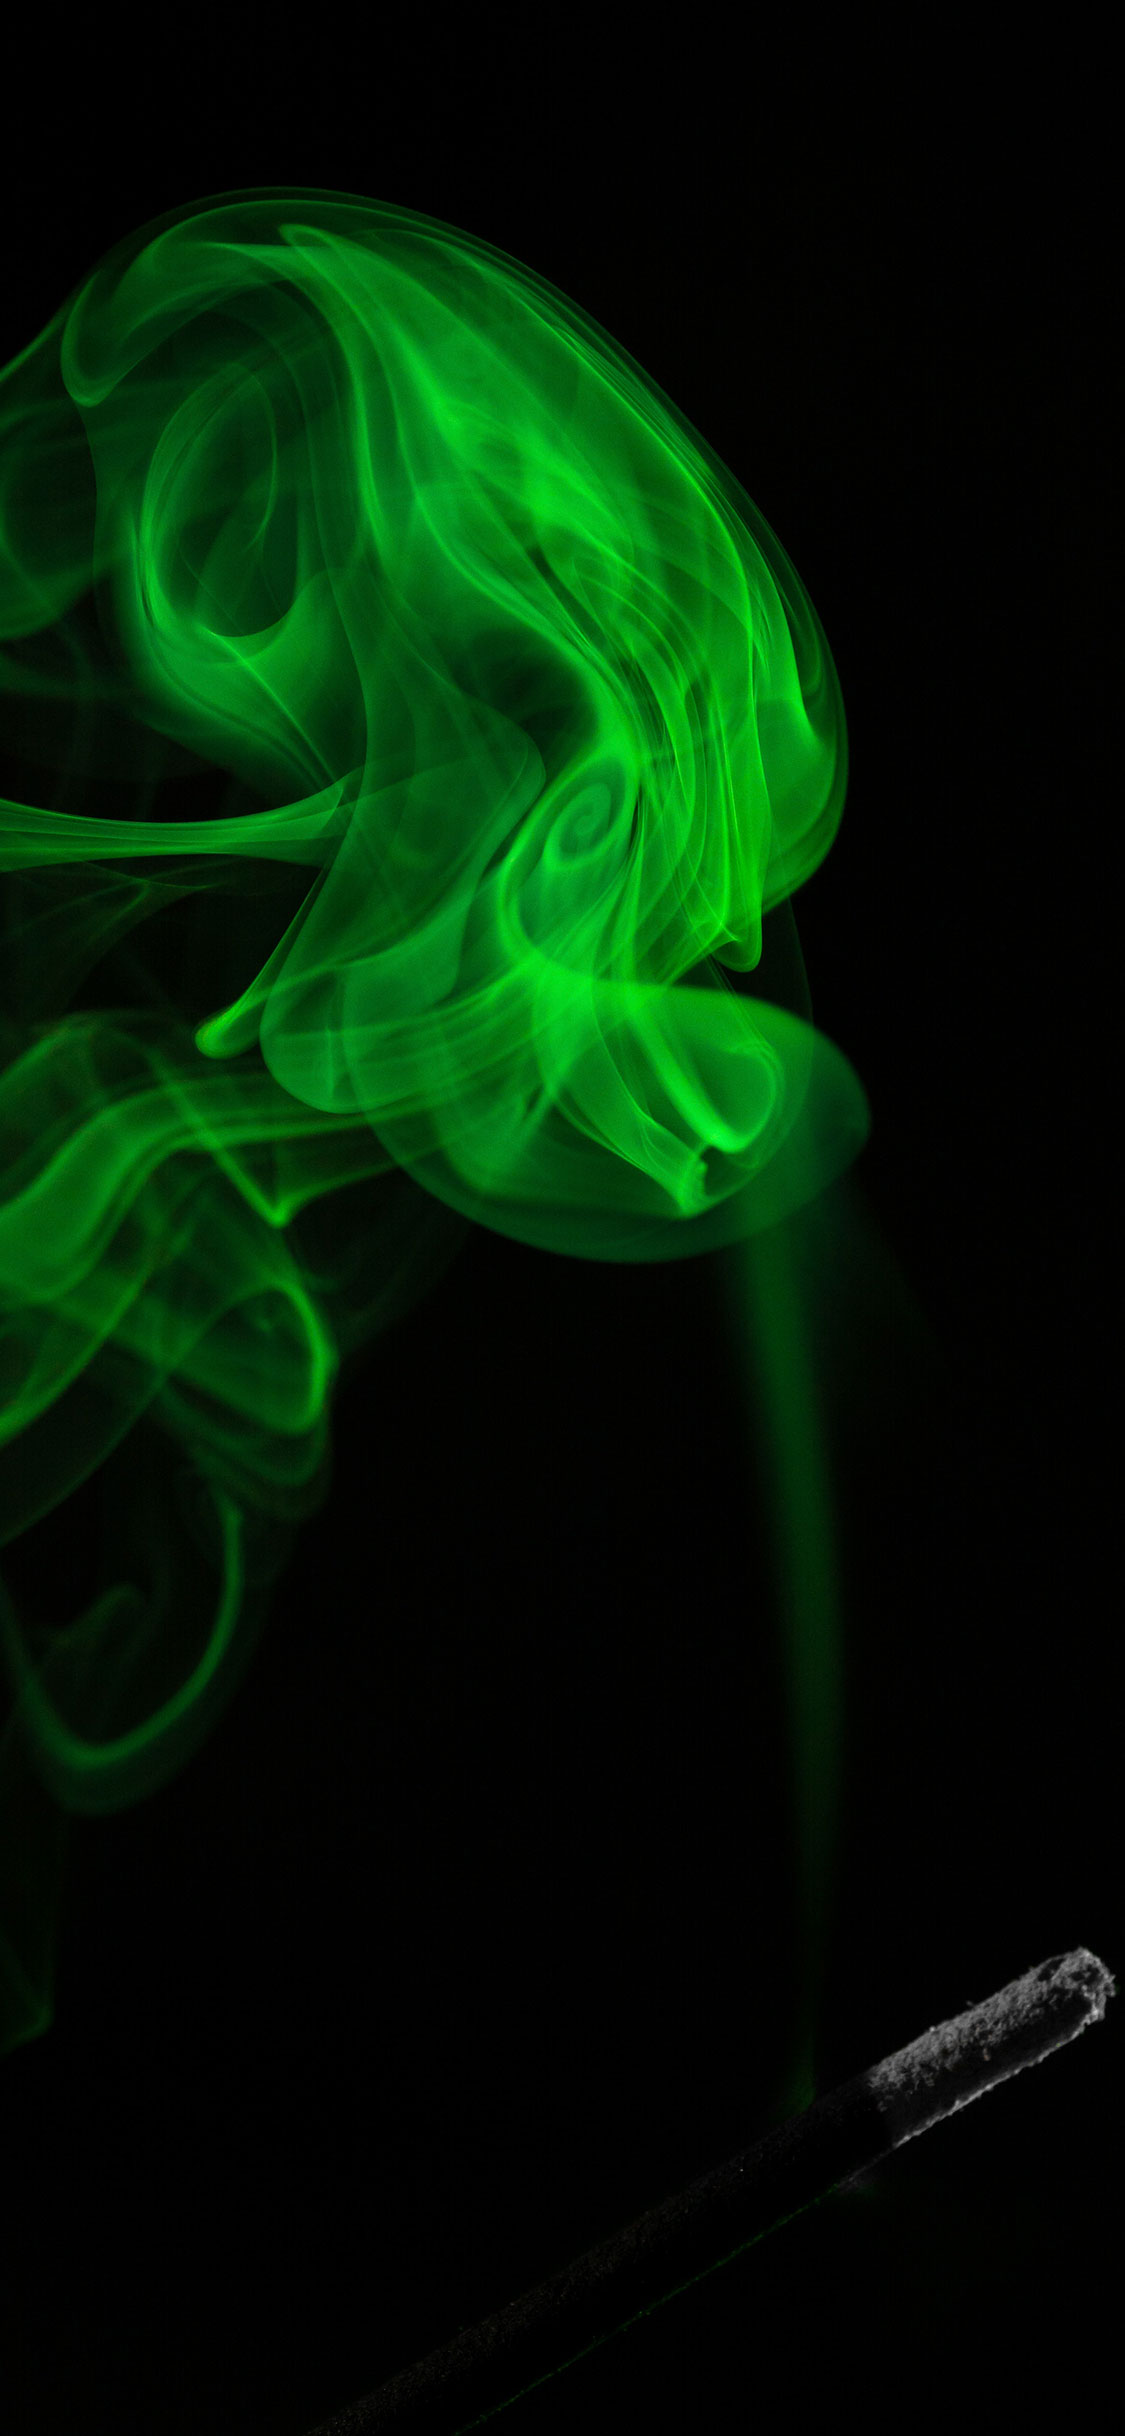 iPhone wallpaper smoke green Fonds d'écran iPhone du 02/08/2018